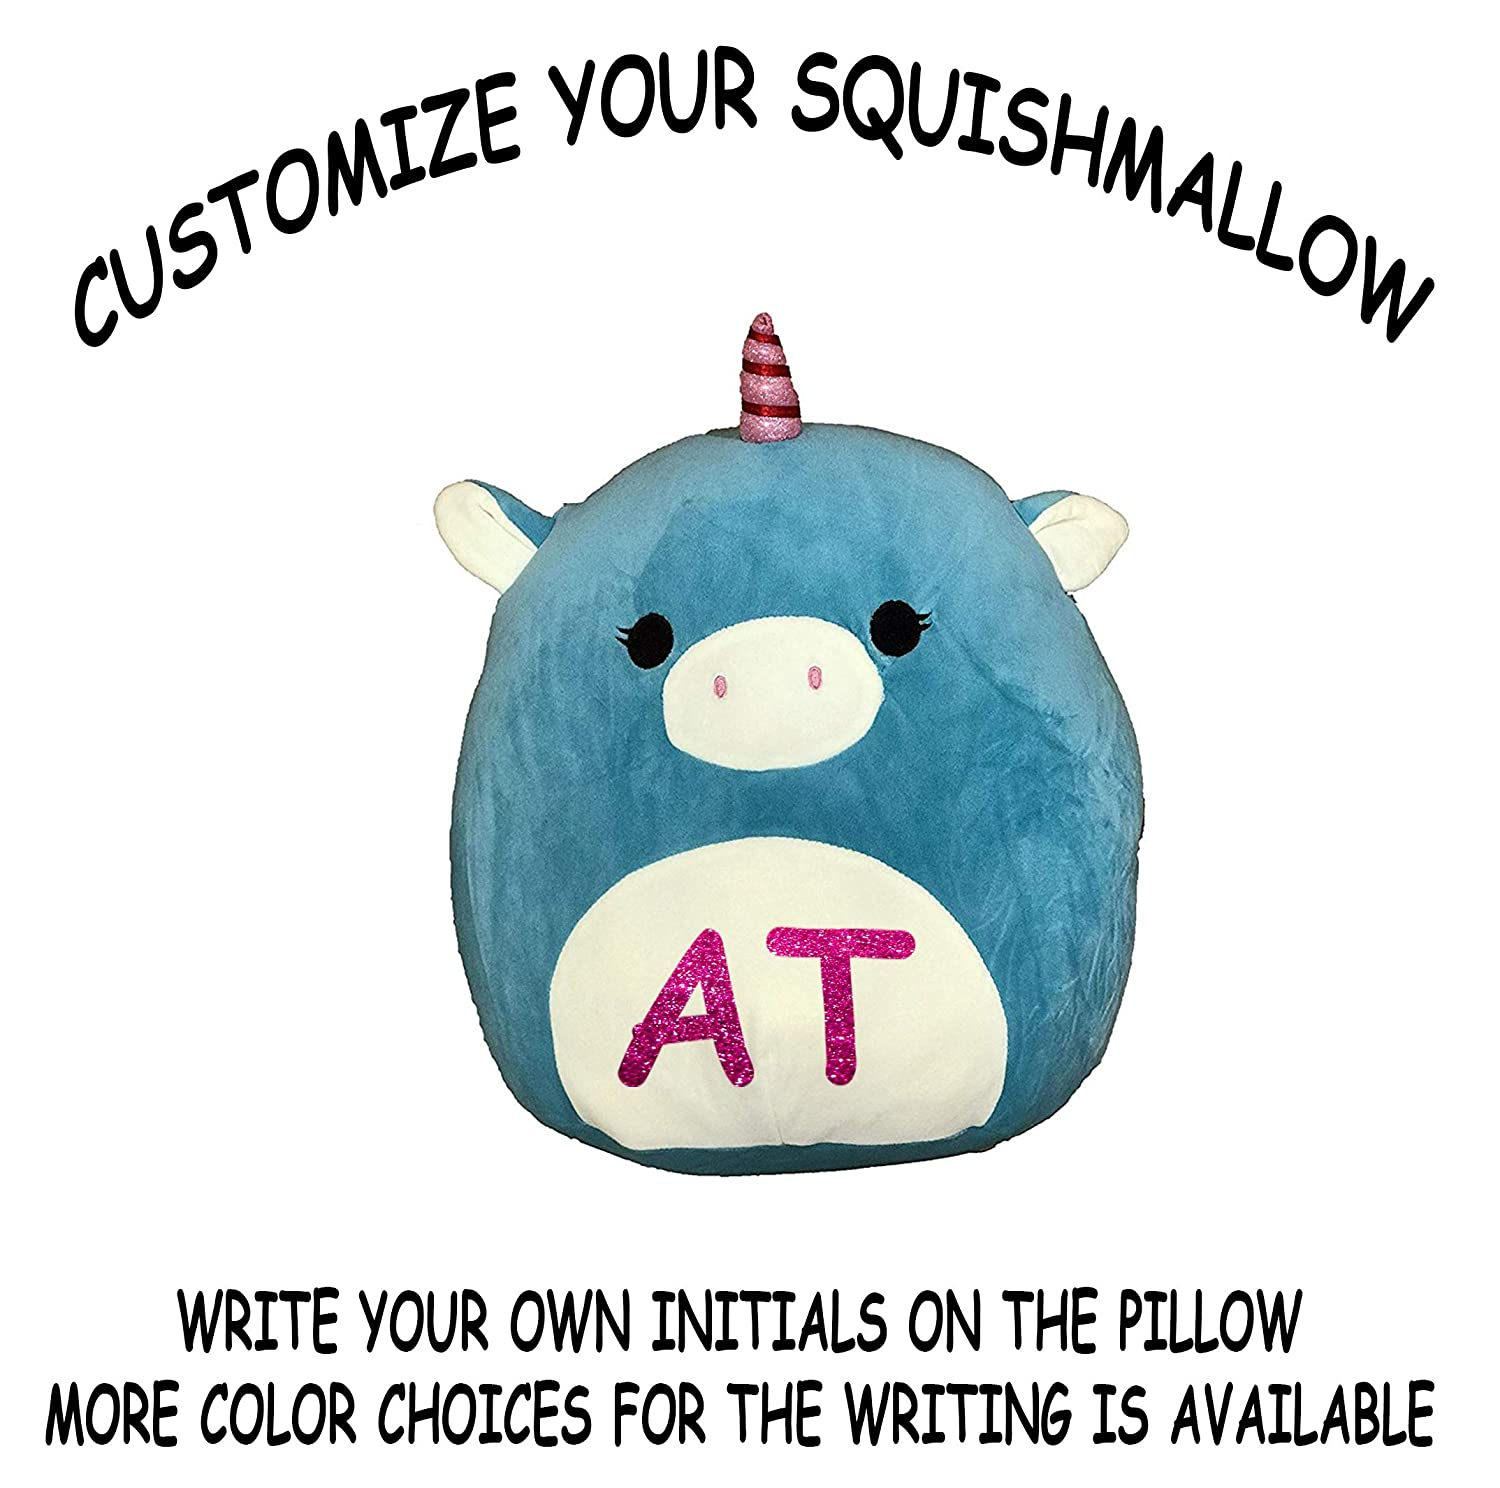 Squishmallow Customized Kellytoy 5 Cam The Cat Super Soft Plush Toy Pillow Pet Animal Pillow /… 8 and 13 Panda Squishmallow